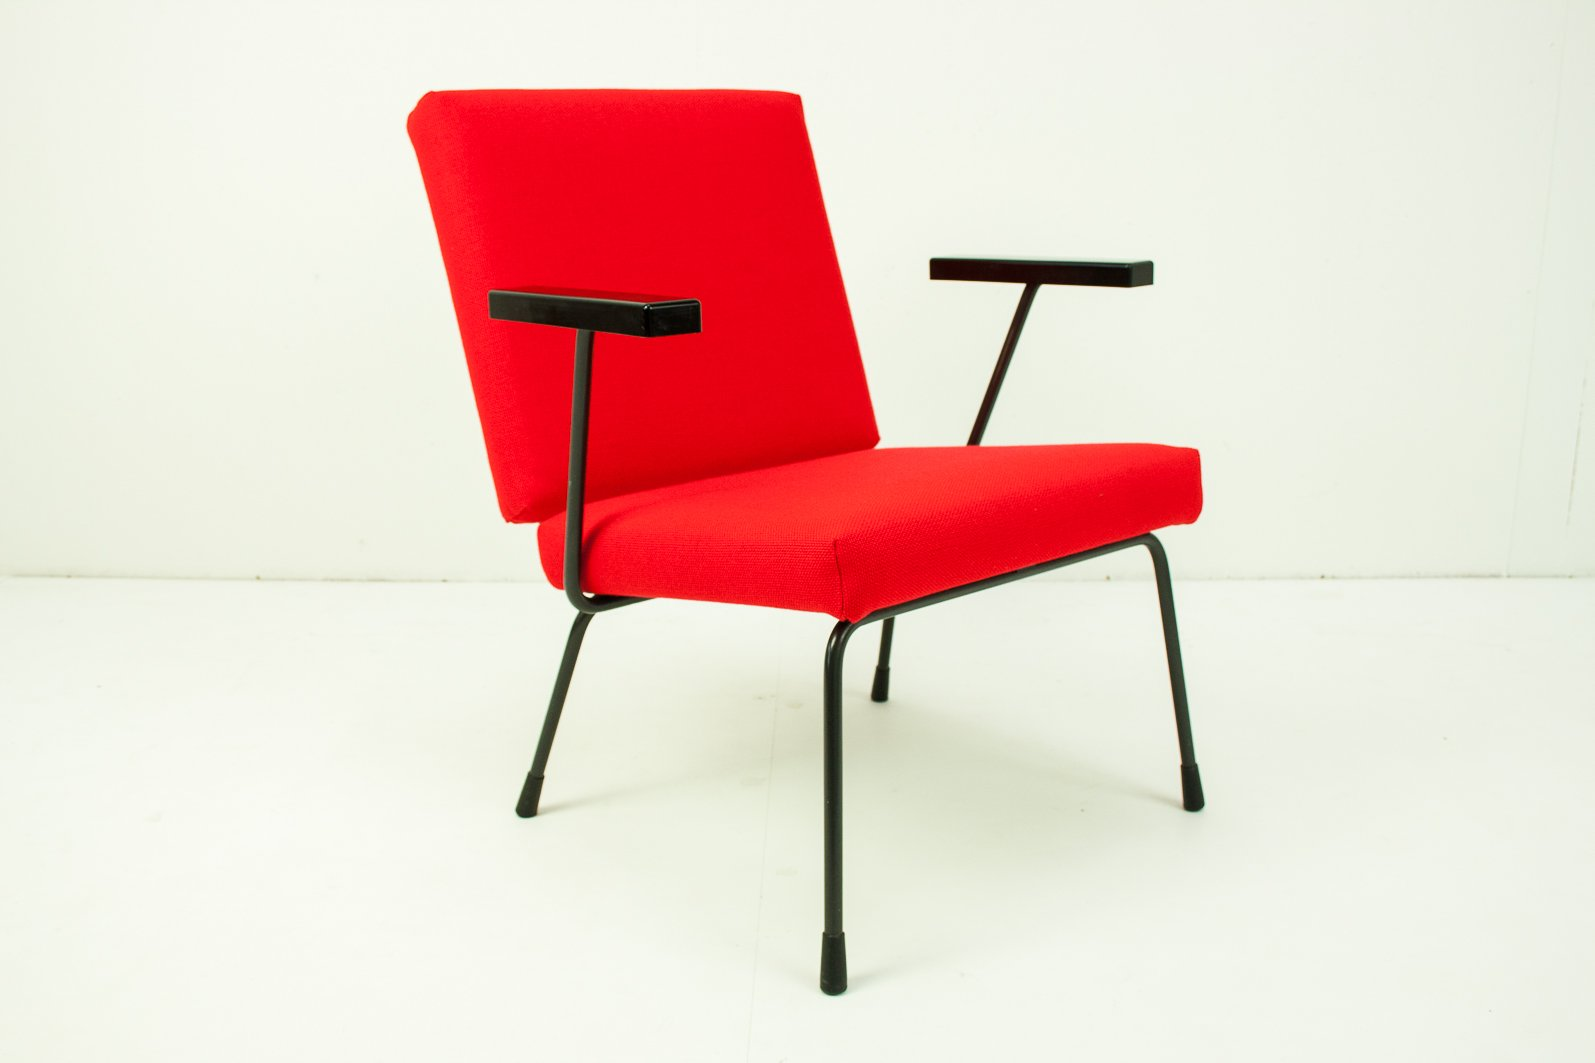 Rietveld Stuhl model 415 1401 chair by wim rietveld for gispen 1950s for sale at